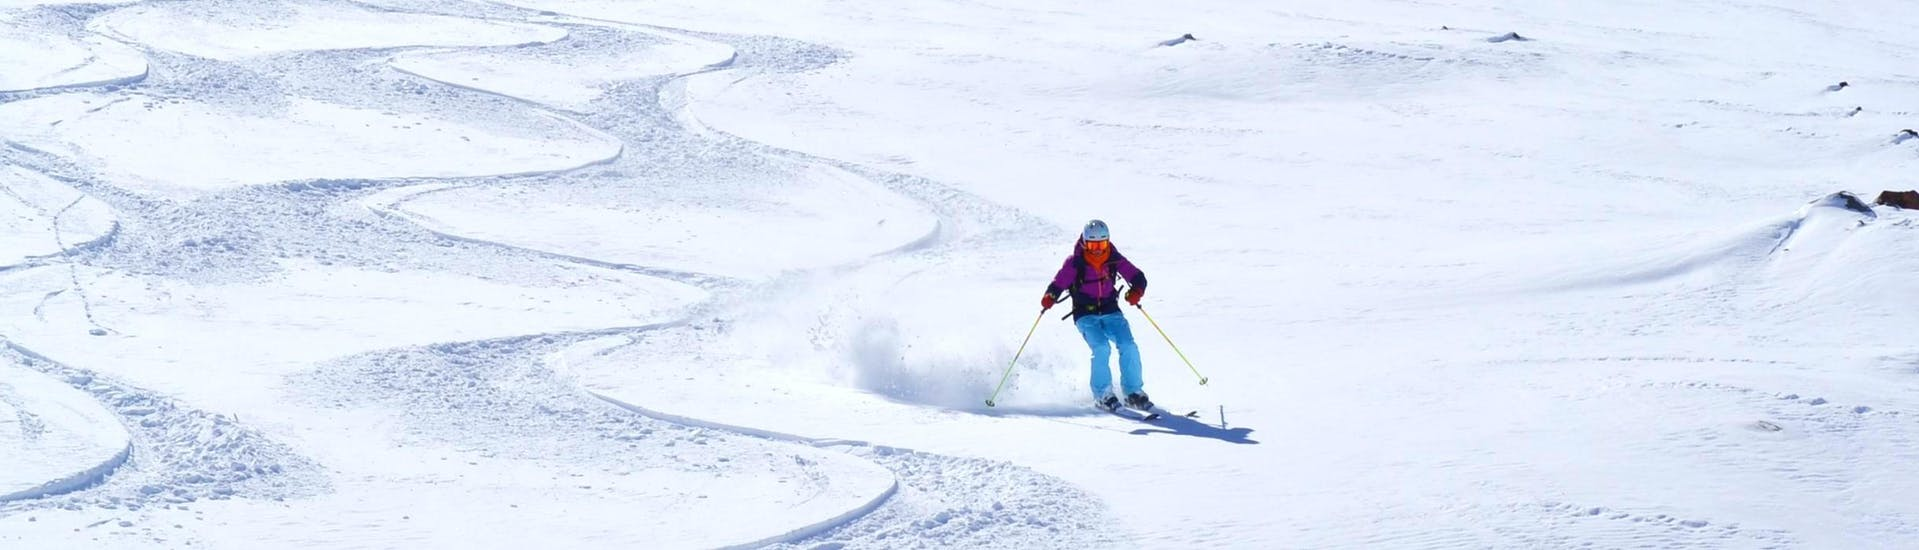 private-ski-lessons-for-adults-holidays-all-levels-esi-chatel-hero